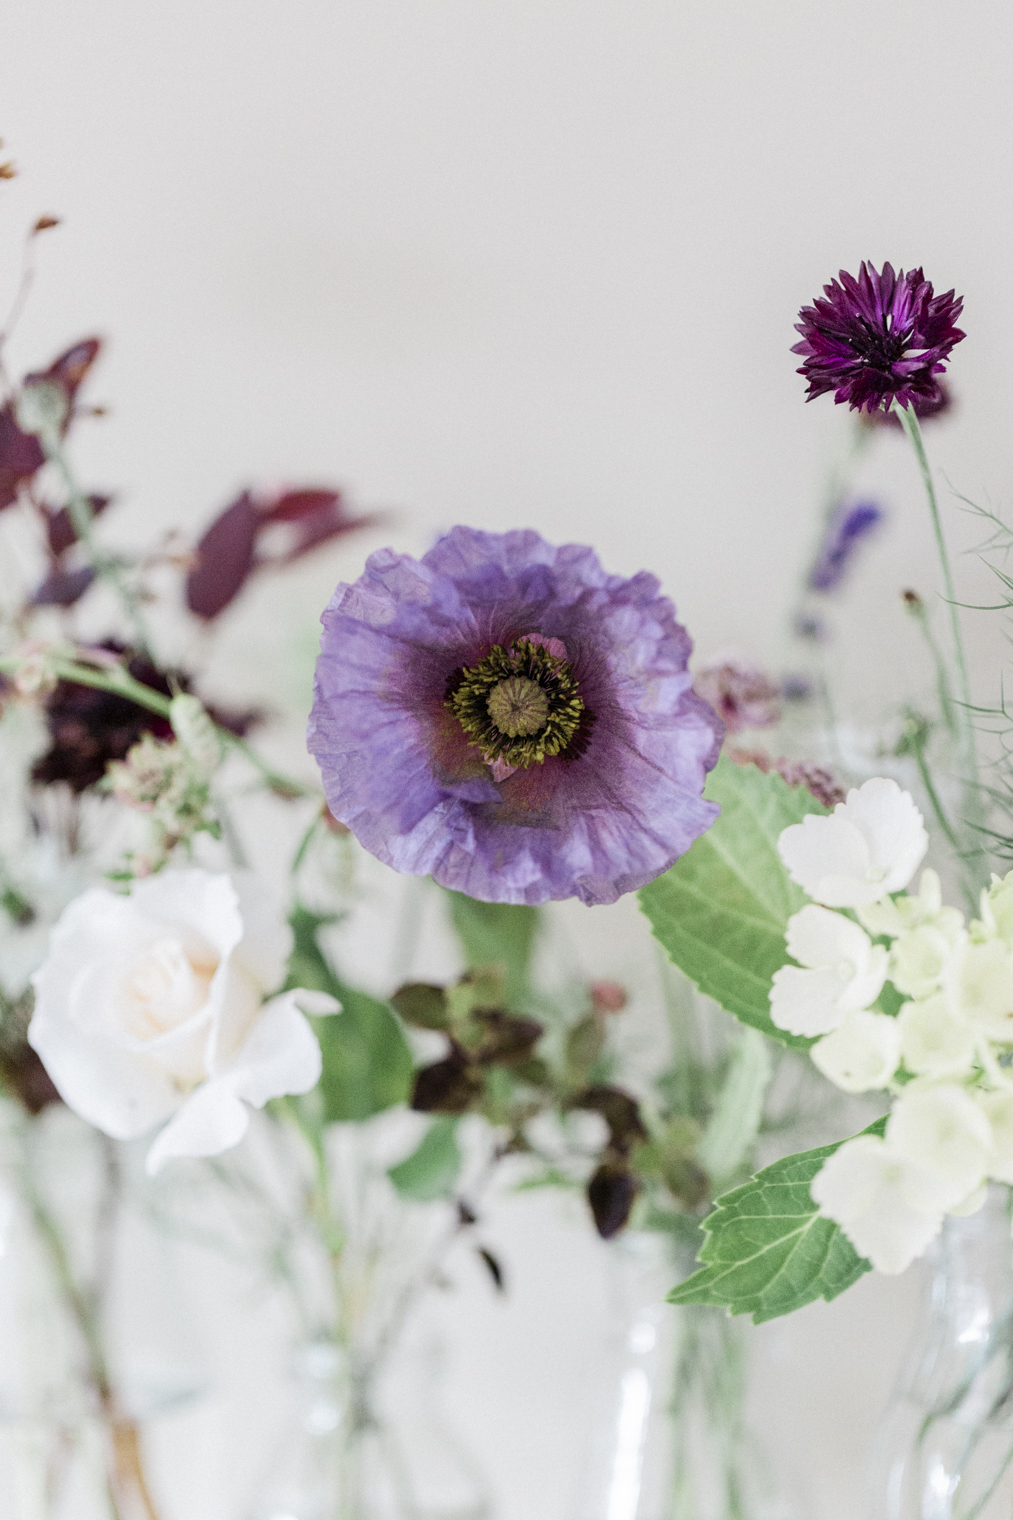 Floristry trends - natural, meadowesque, just-picked-from-the-garden look